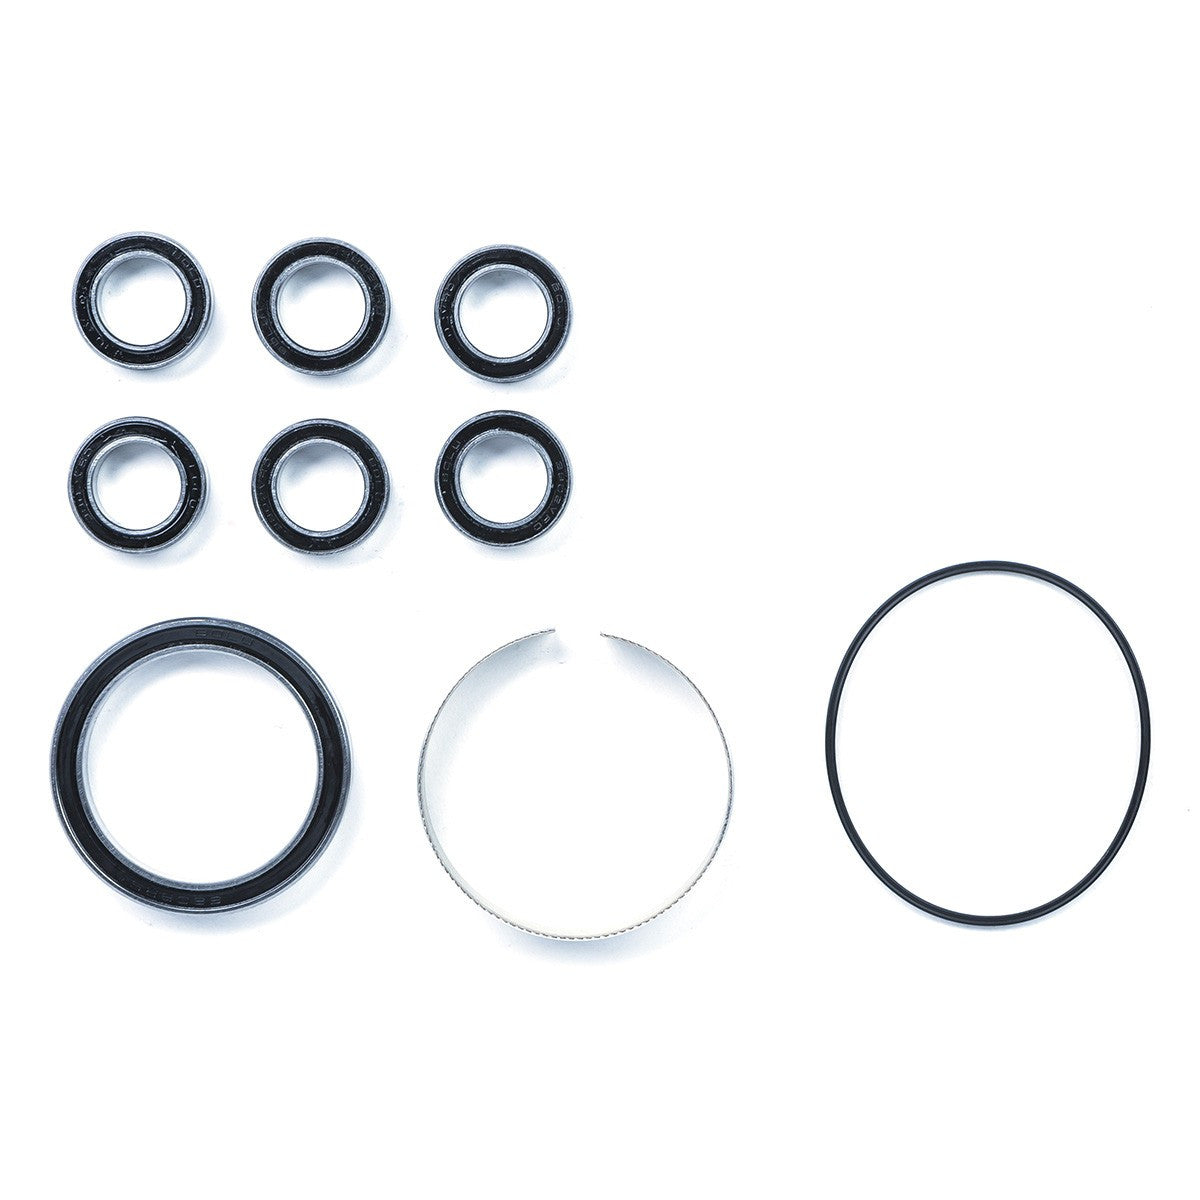 Yeti Parts - SB75-A Bearing Rebuild Kit